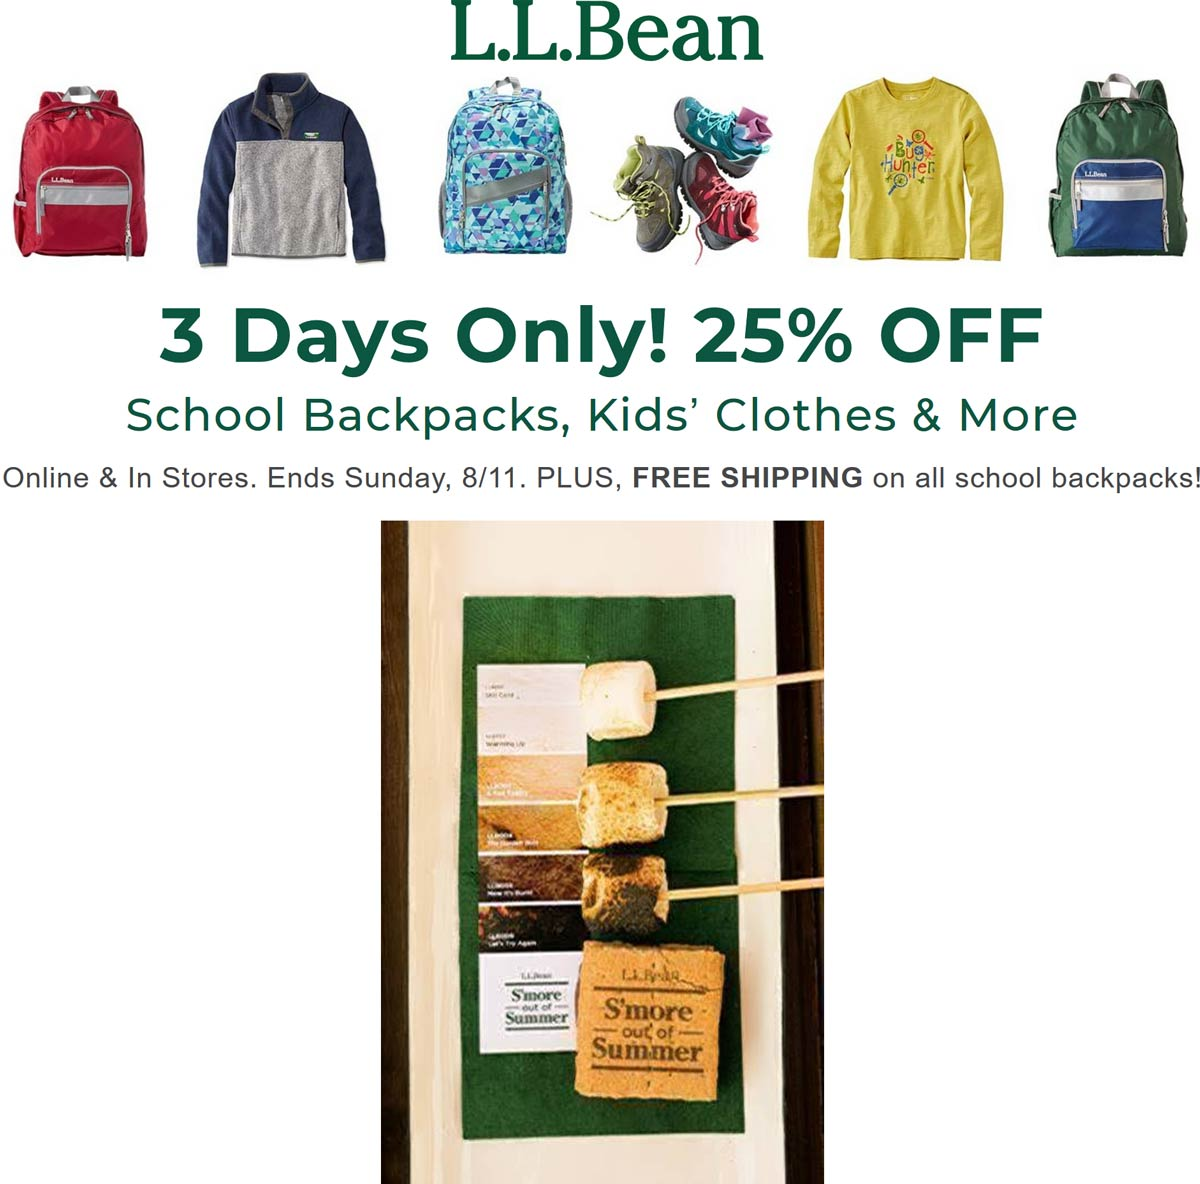 L.L.Bean.com Promo Coupon Free smores Saturday & 25% off back to school at L.L.Bean, ditto online